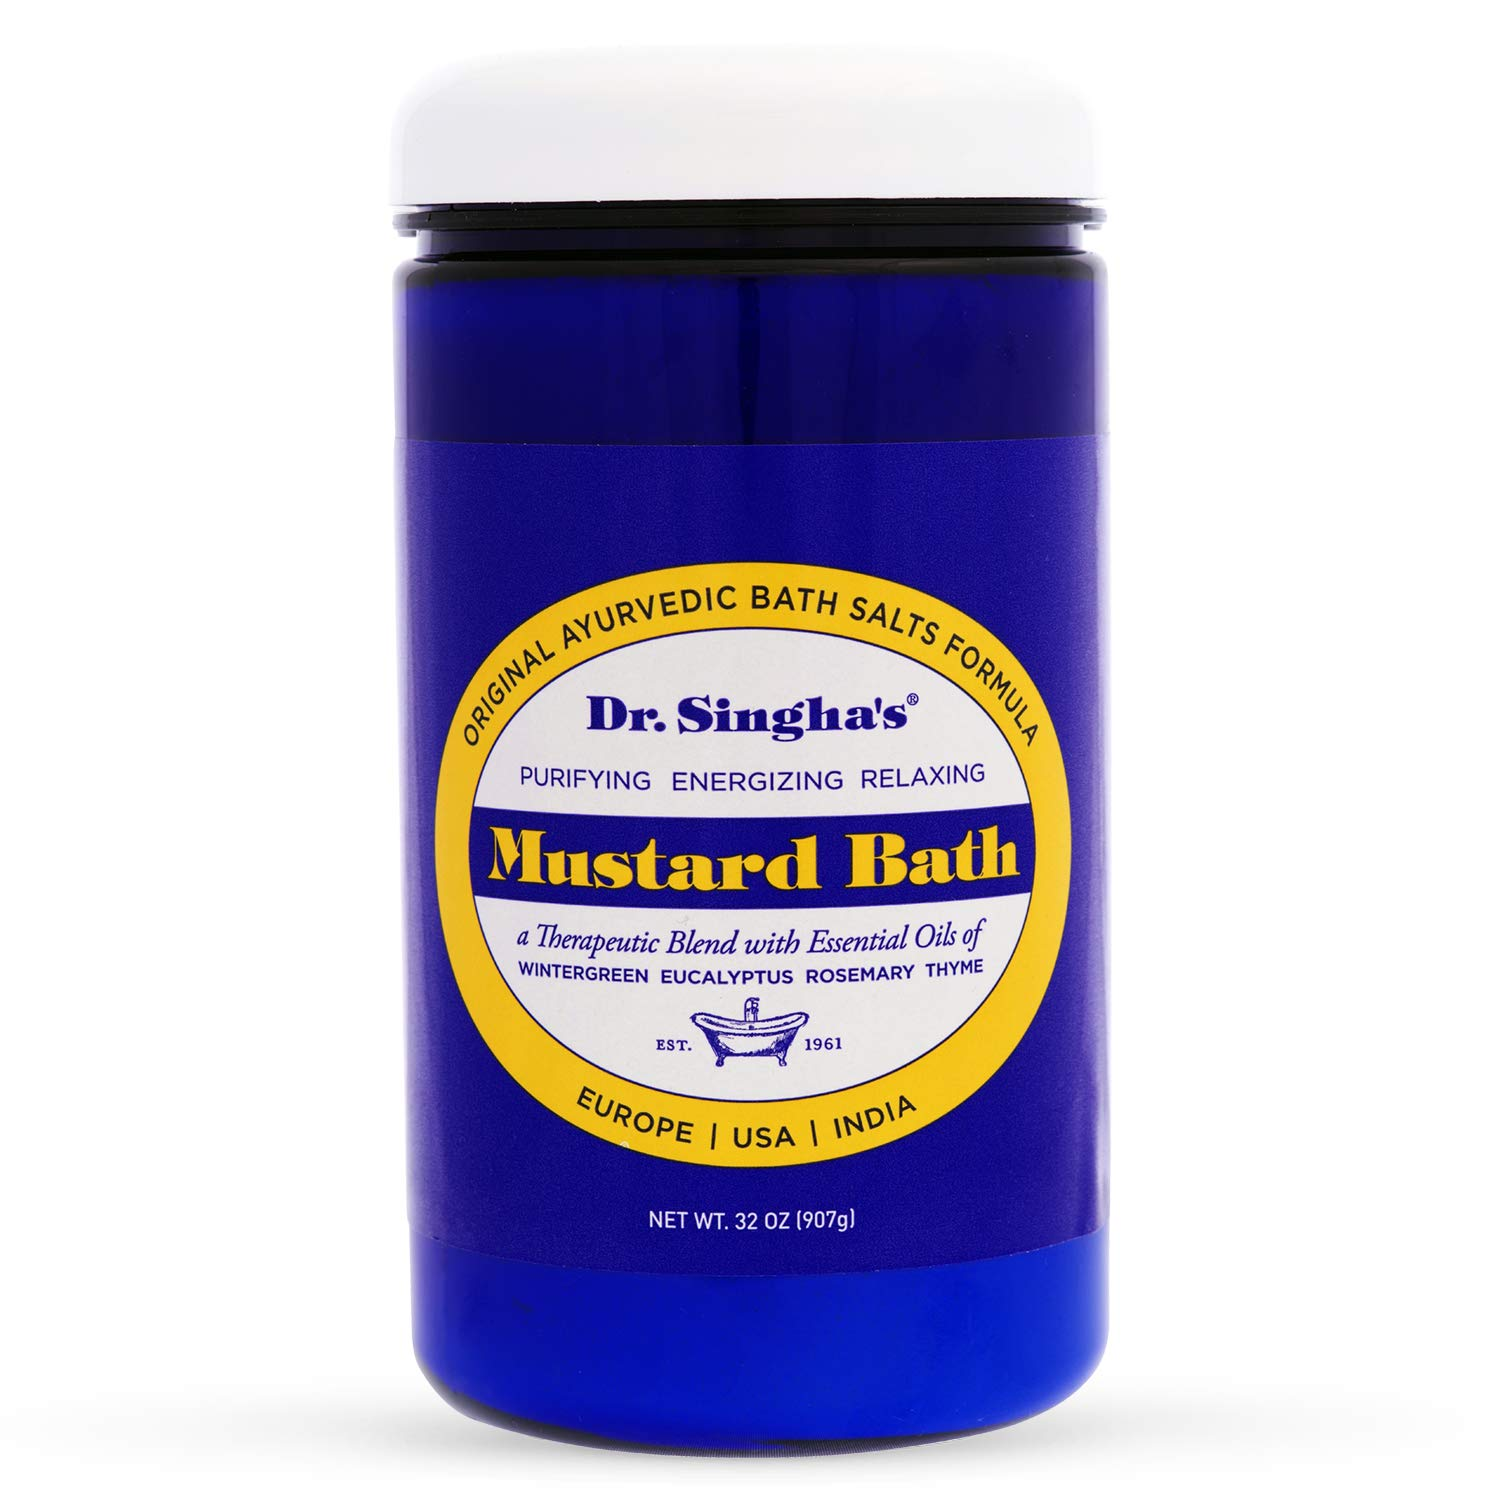 Dr  Singha's Mustard Bath, Therapeutic Bath Salts, 8 Ounce - Relaxing Bath  Salts with Essential Oils For